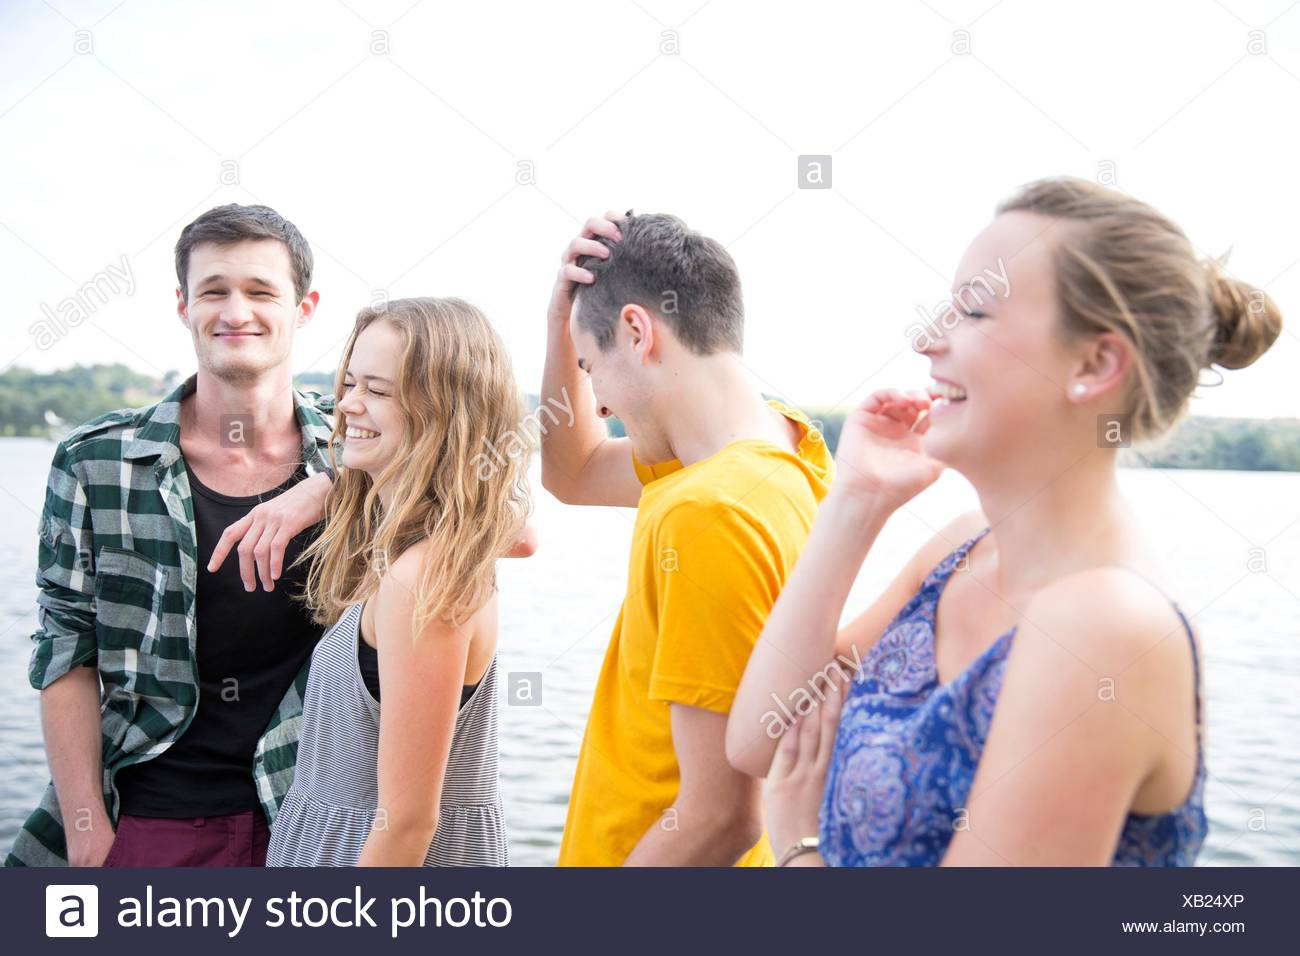 Group of young adults, outdoors, laughing - Stock Image